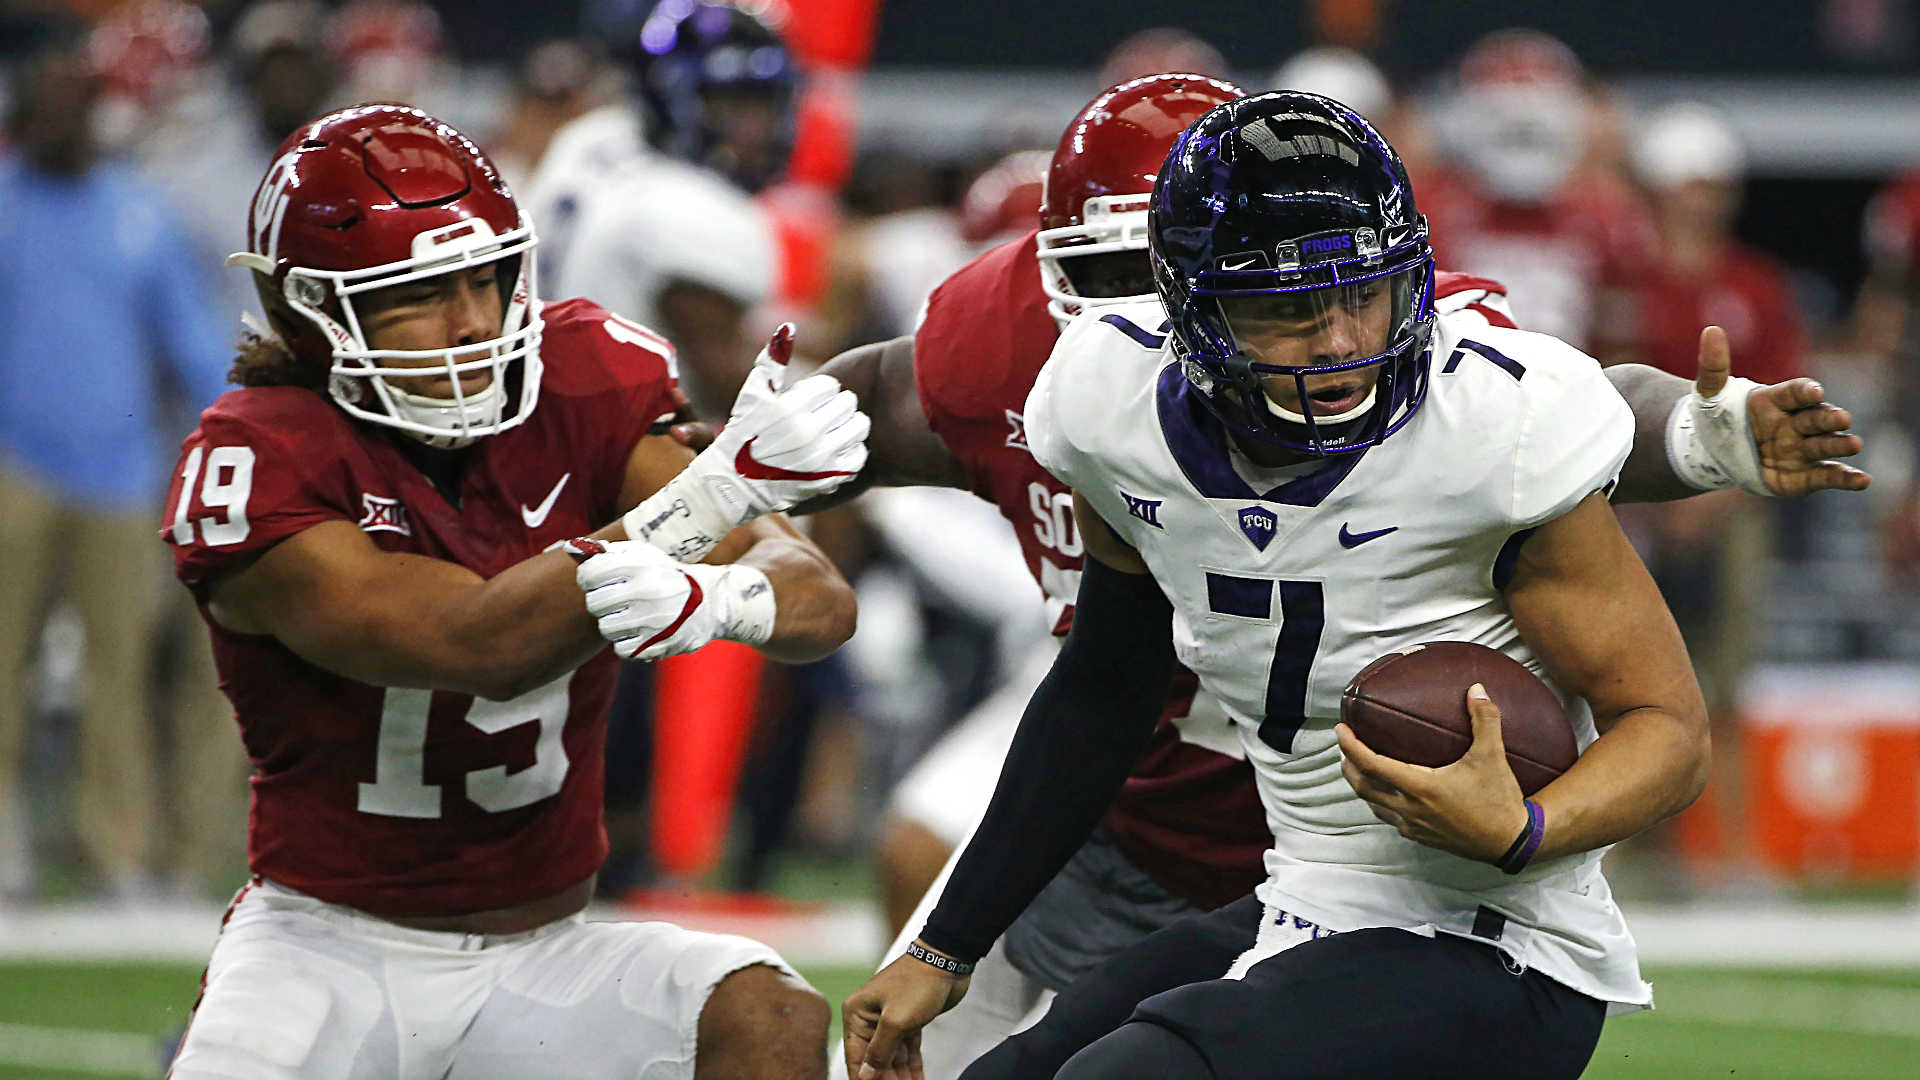 Big 12 Championship: Sooners throttle TCU for 3rd straight Big 12 title